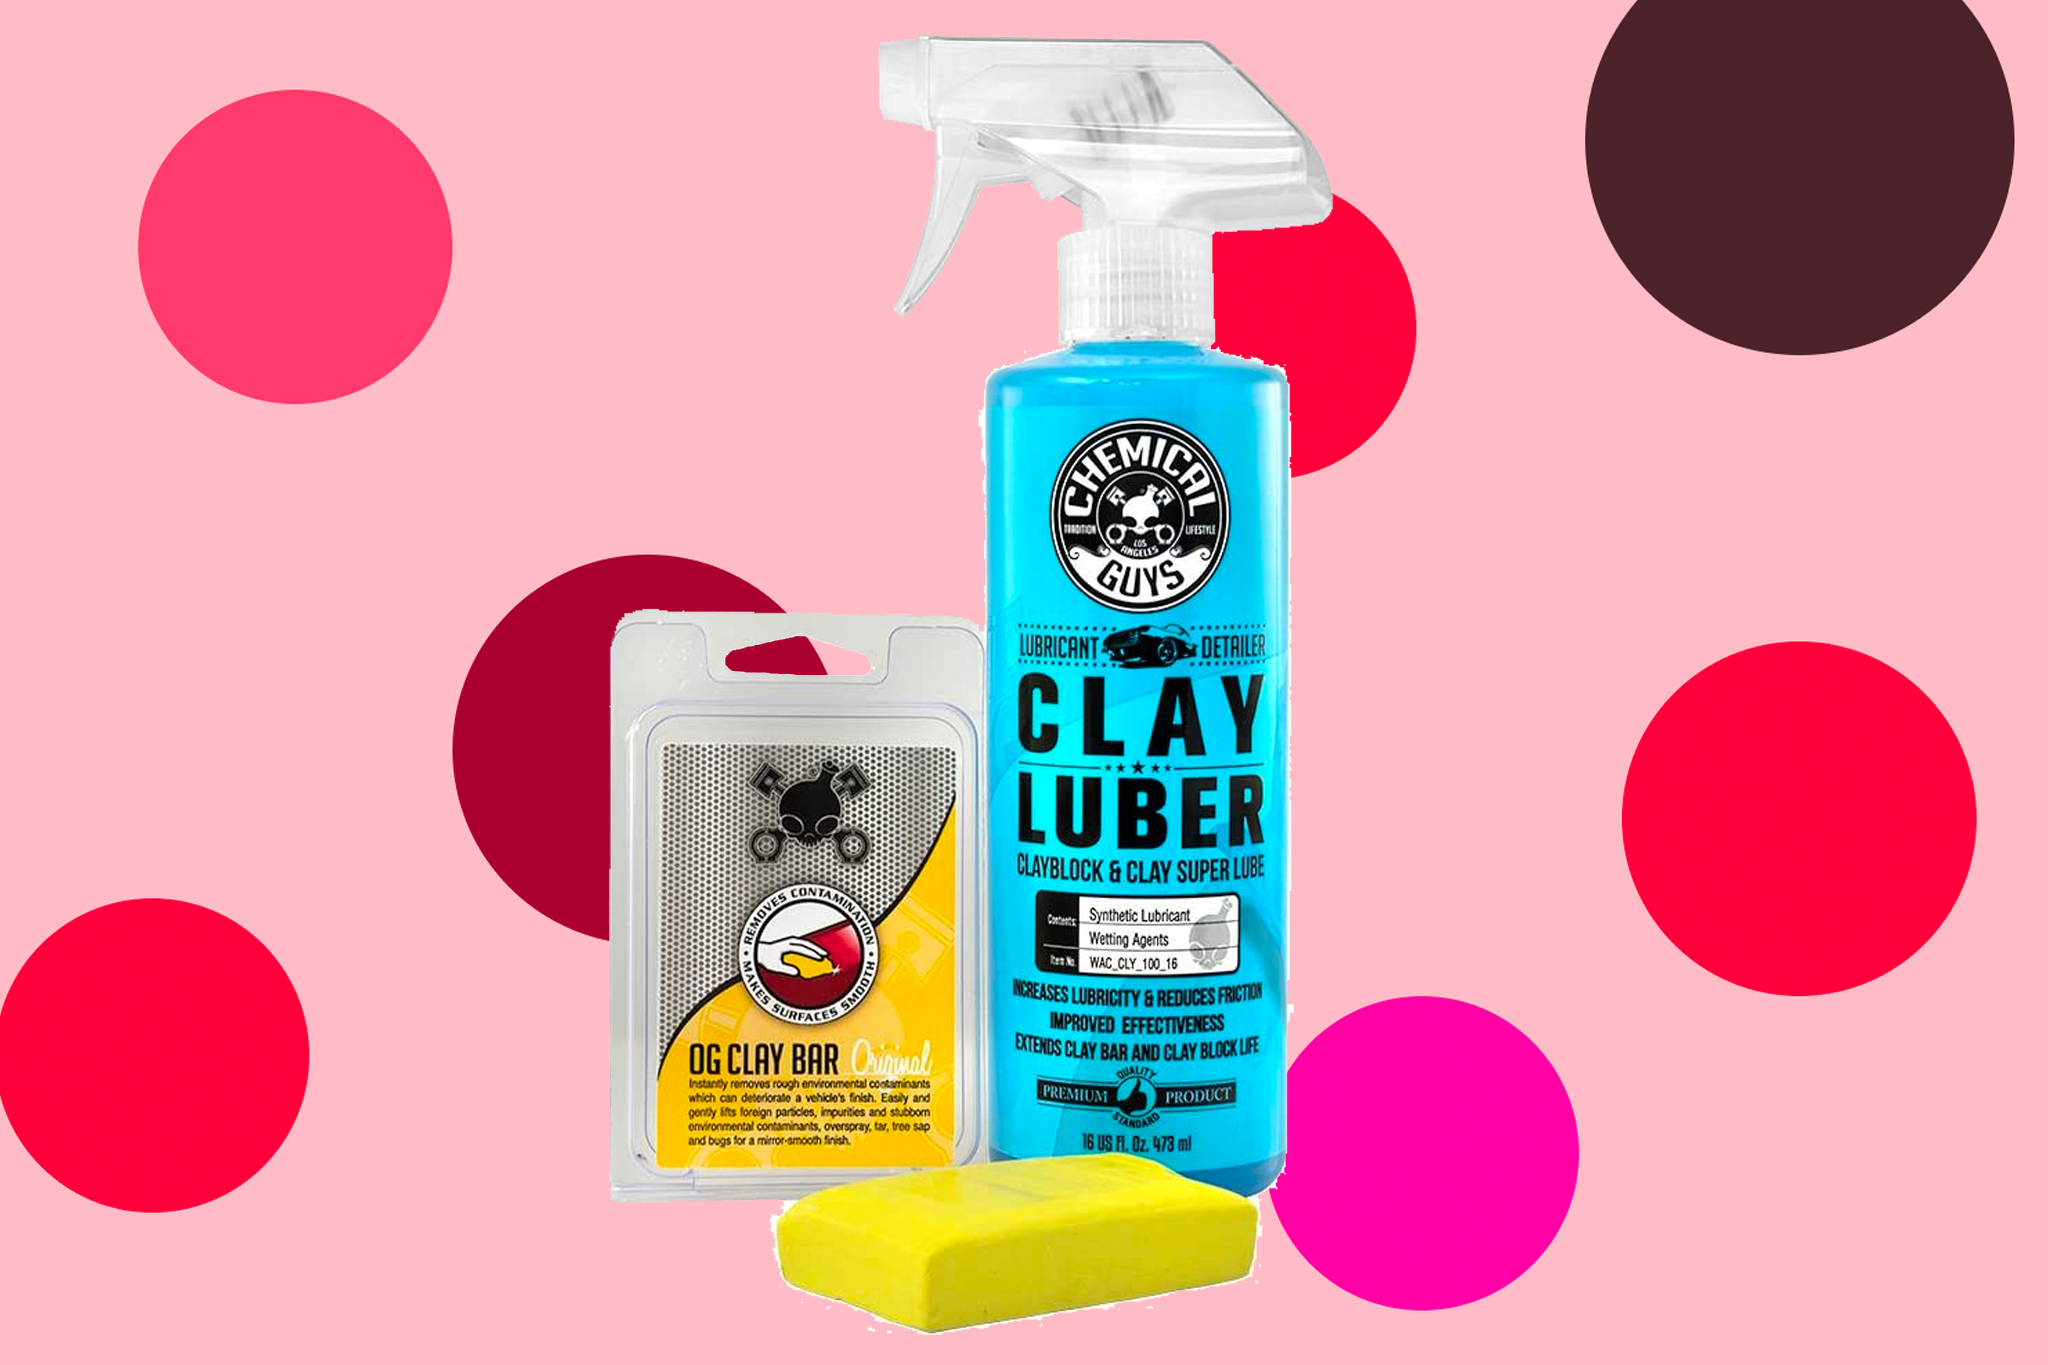 Chemical Guys car cleaning supplies are discounted for Prime Day